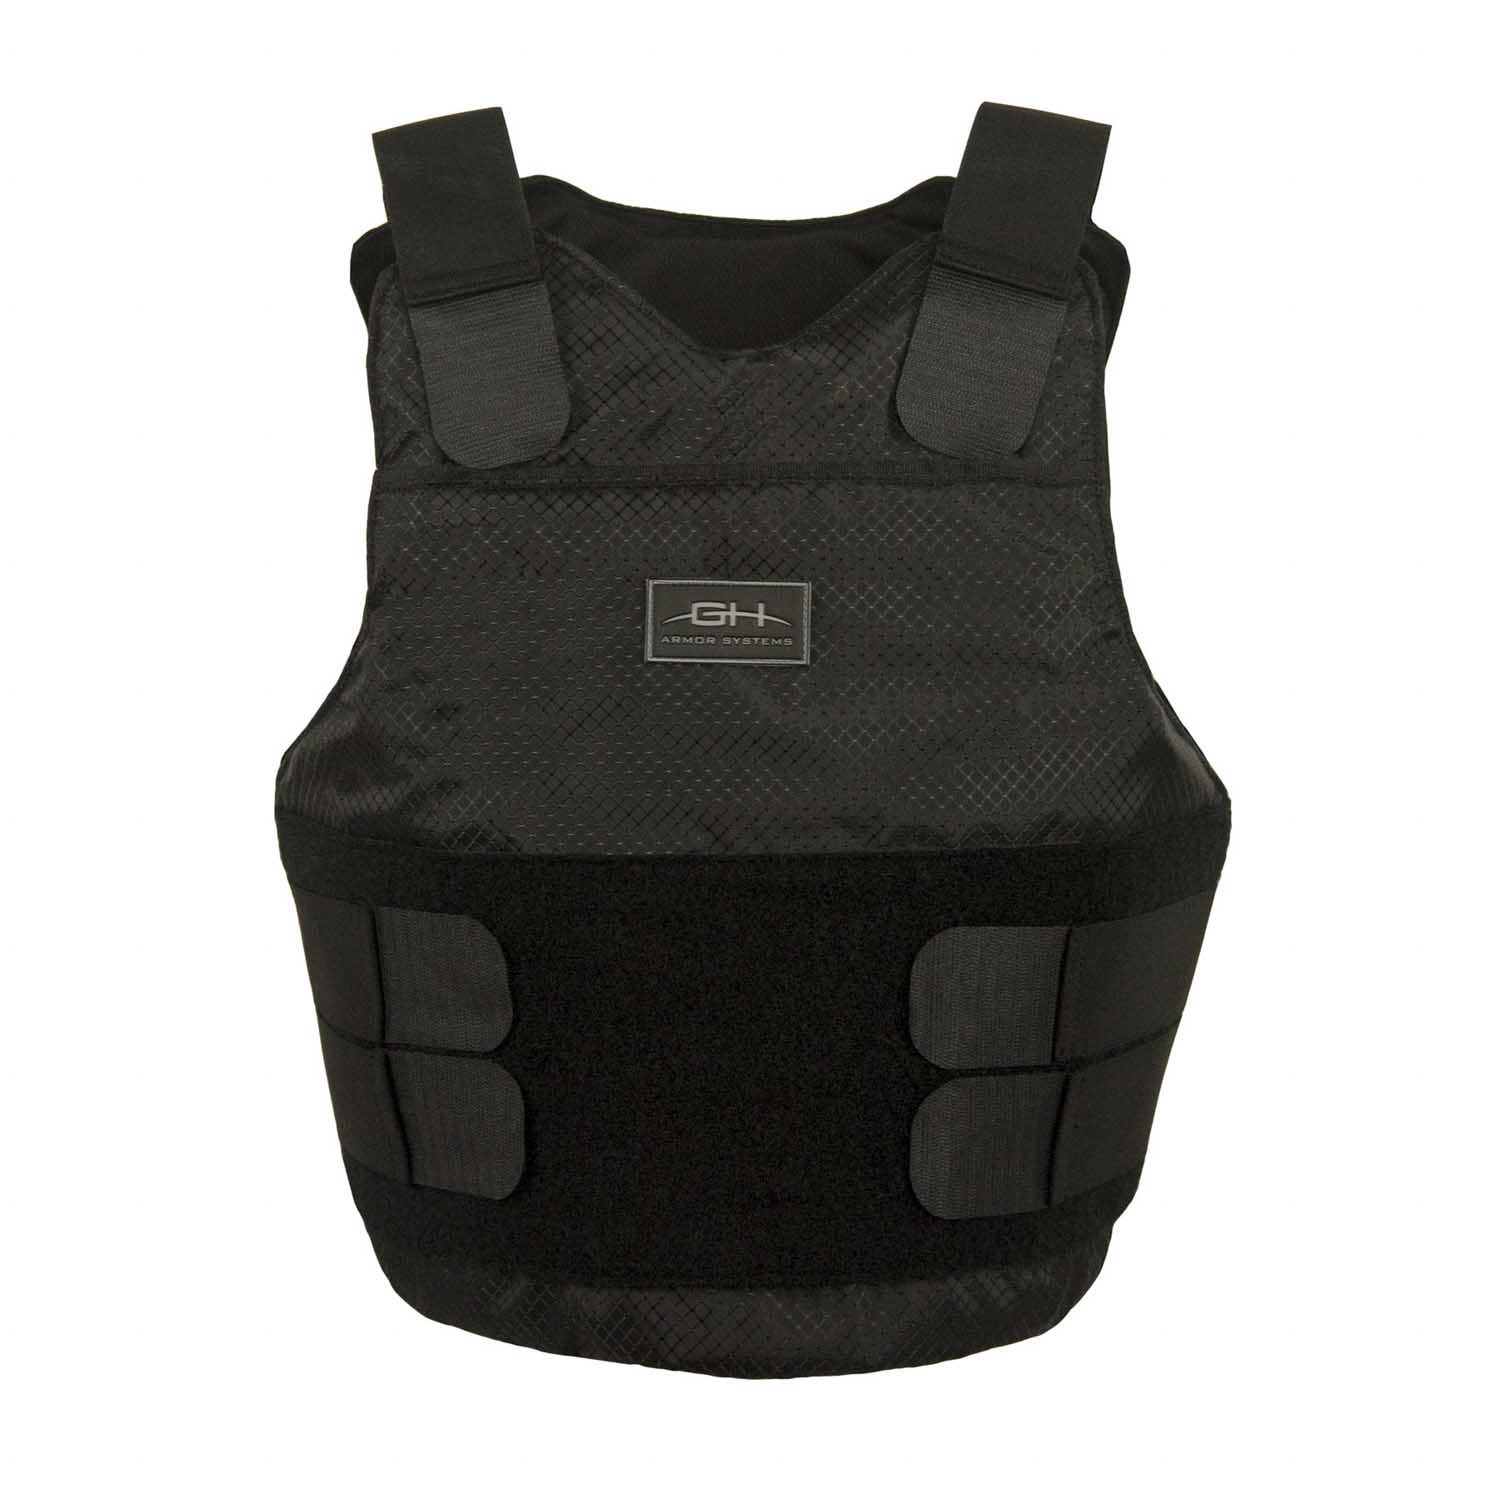 GH Armor HeliX II Vest with 2 Orion Carriers